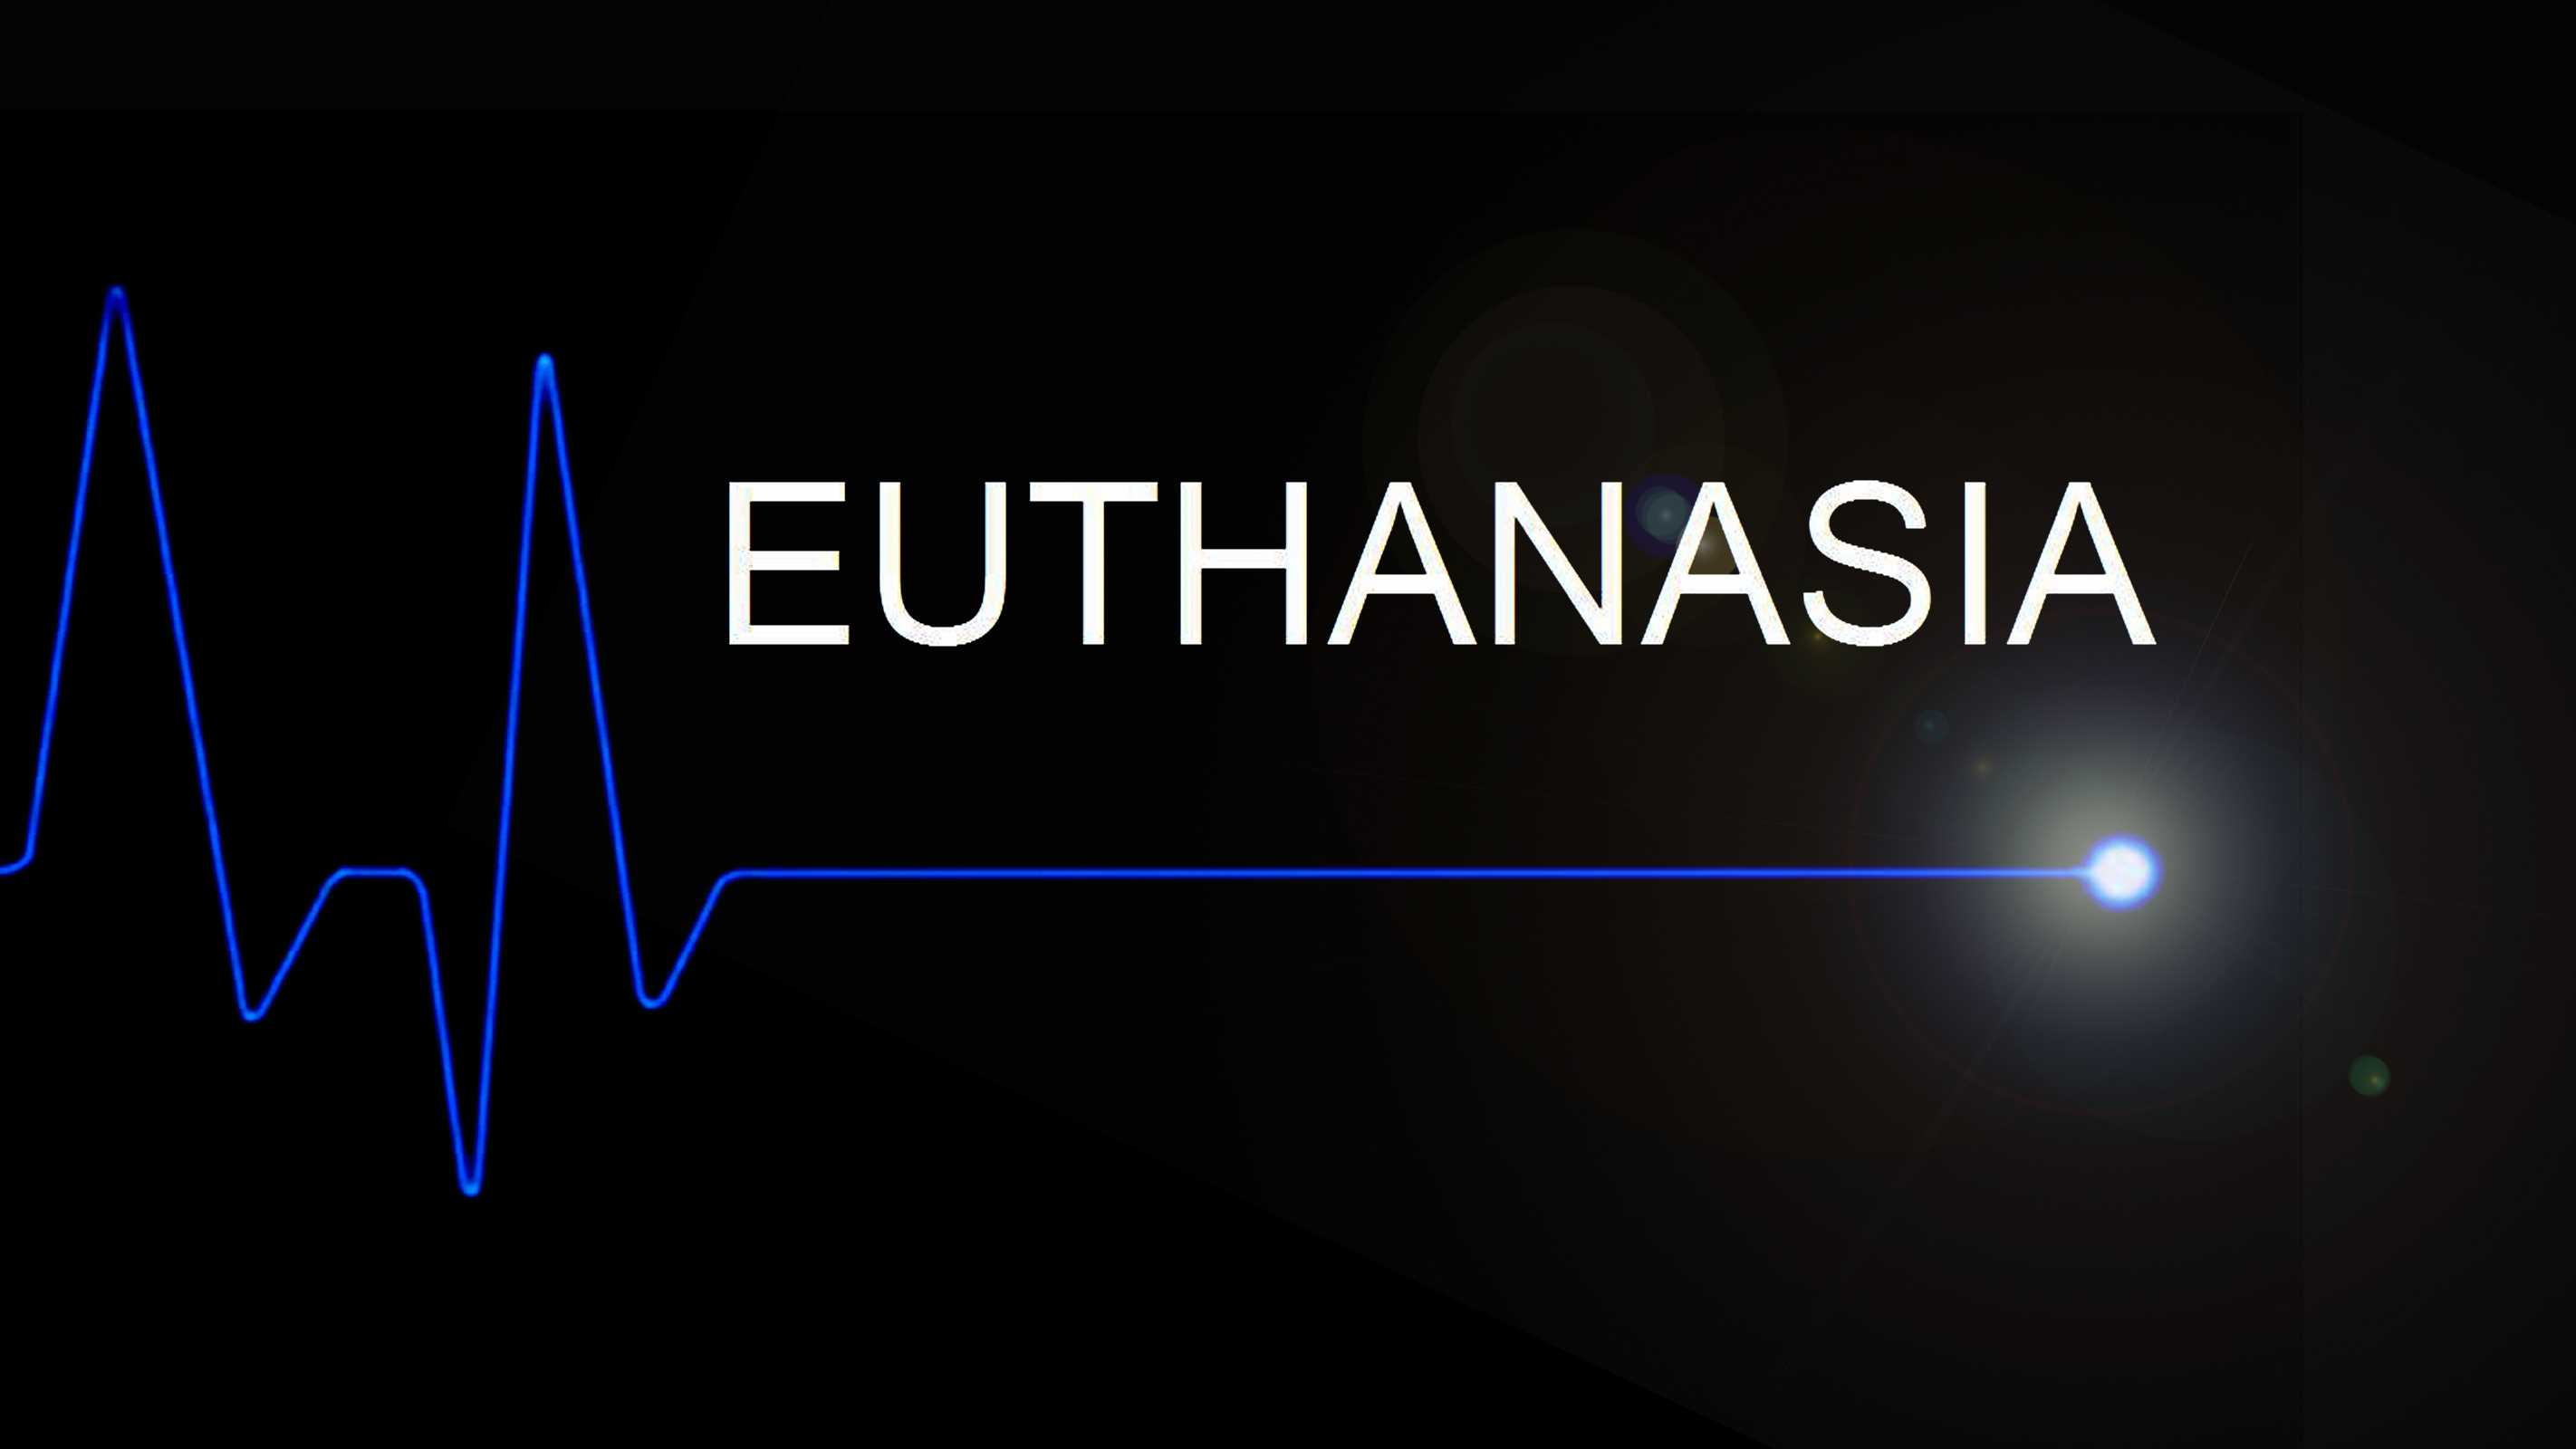 a description of euthanasia in the online article by the international anti euthanasia task force To kill or not to kill: two experts debate the morality of euthanasia.